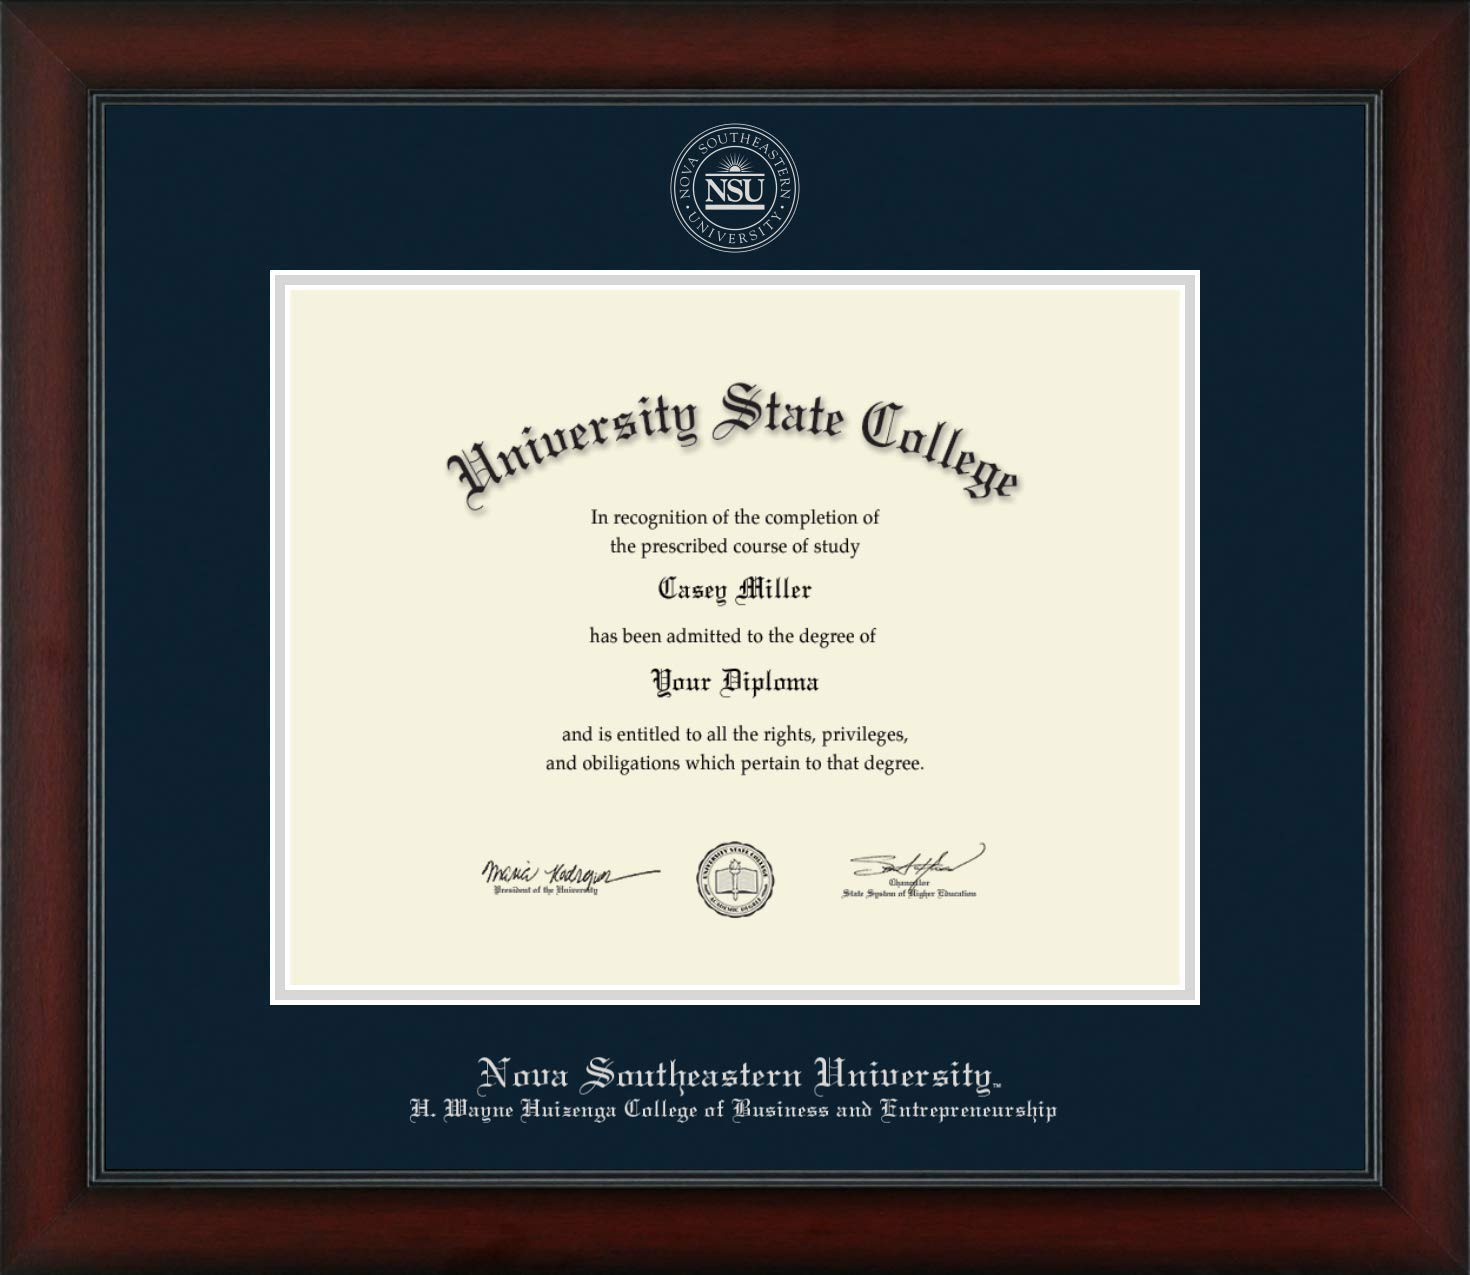 Nova Southeastern University H. Wayne Huizenga School of Business and Entrepreneurship - Officially Licensed - Silver Embossed Diploma Frame - Diploma Size 14'' x 11''